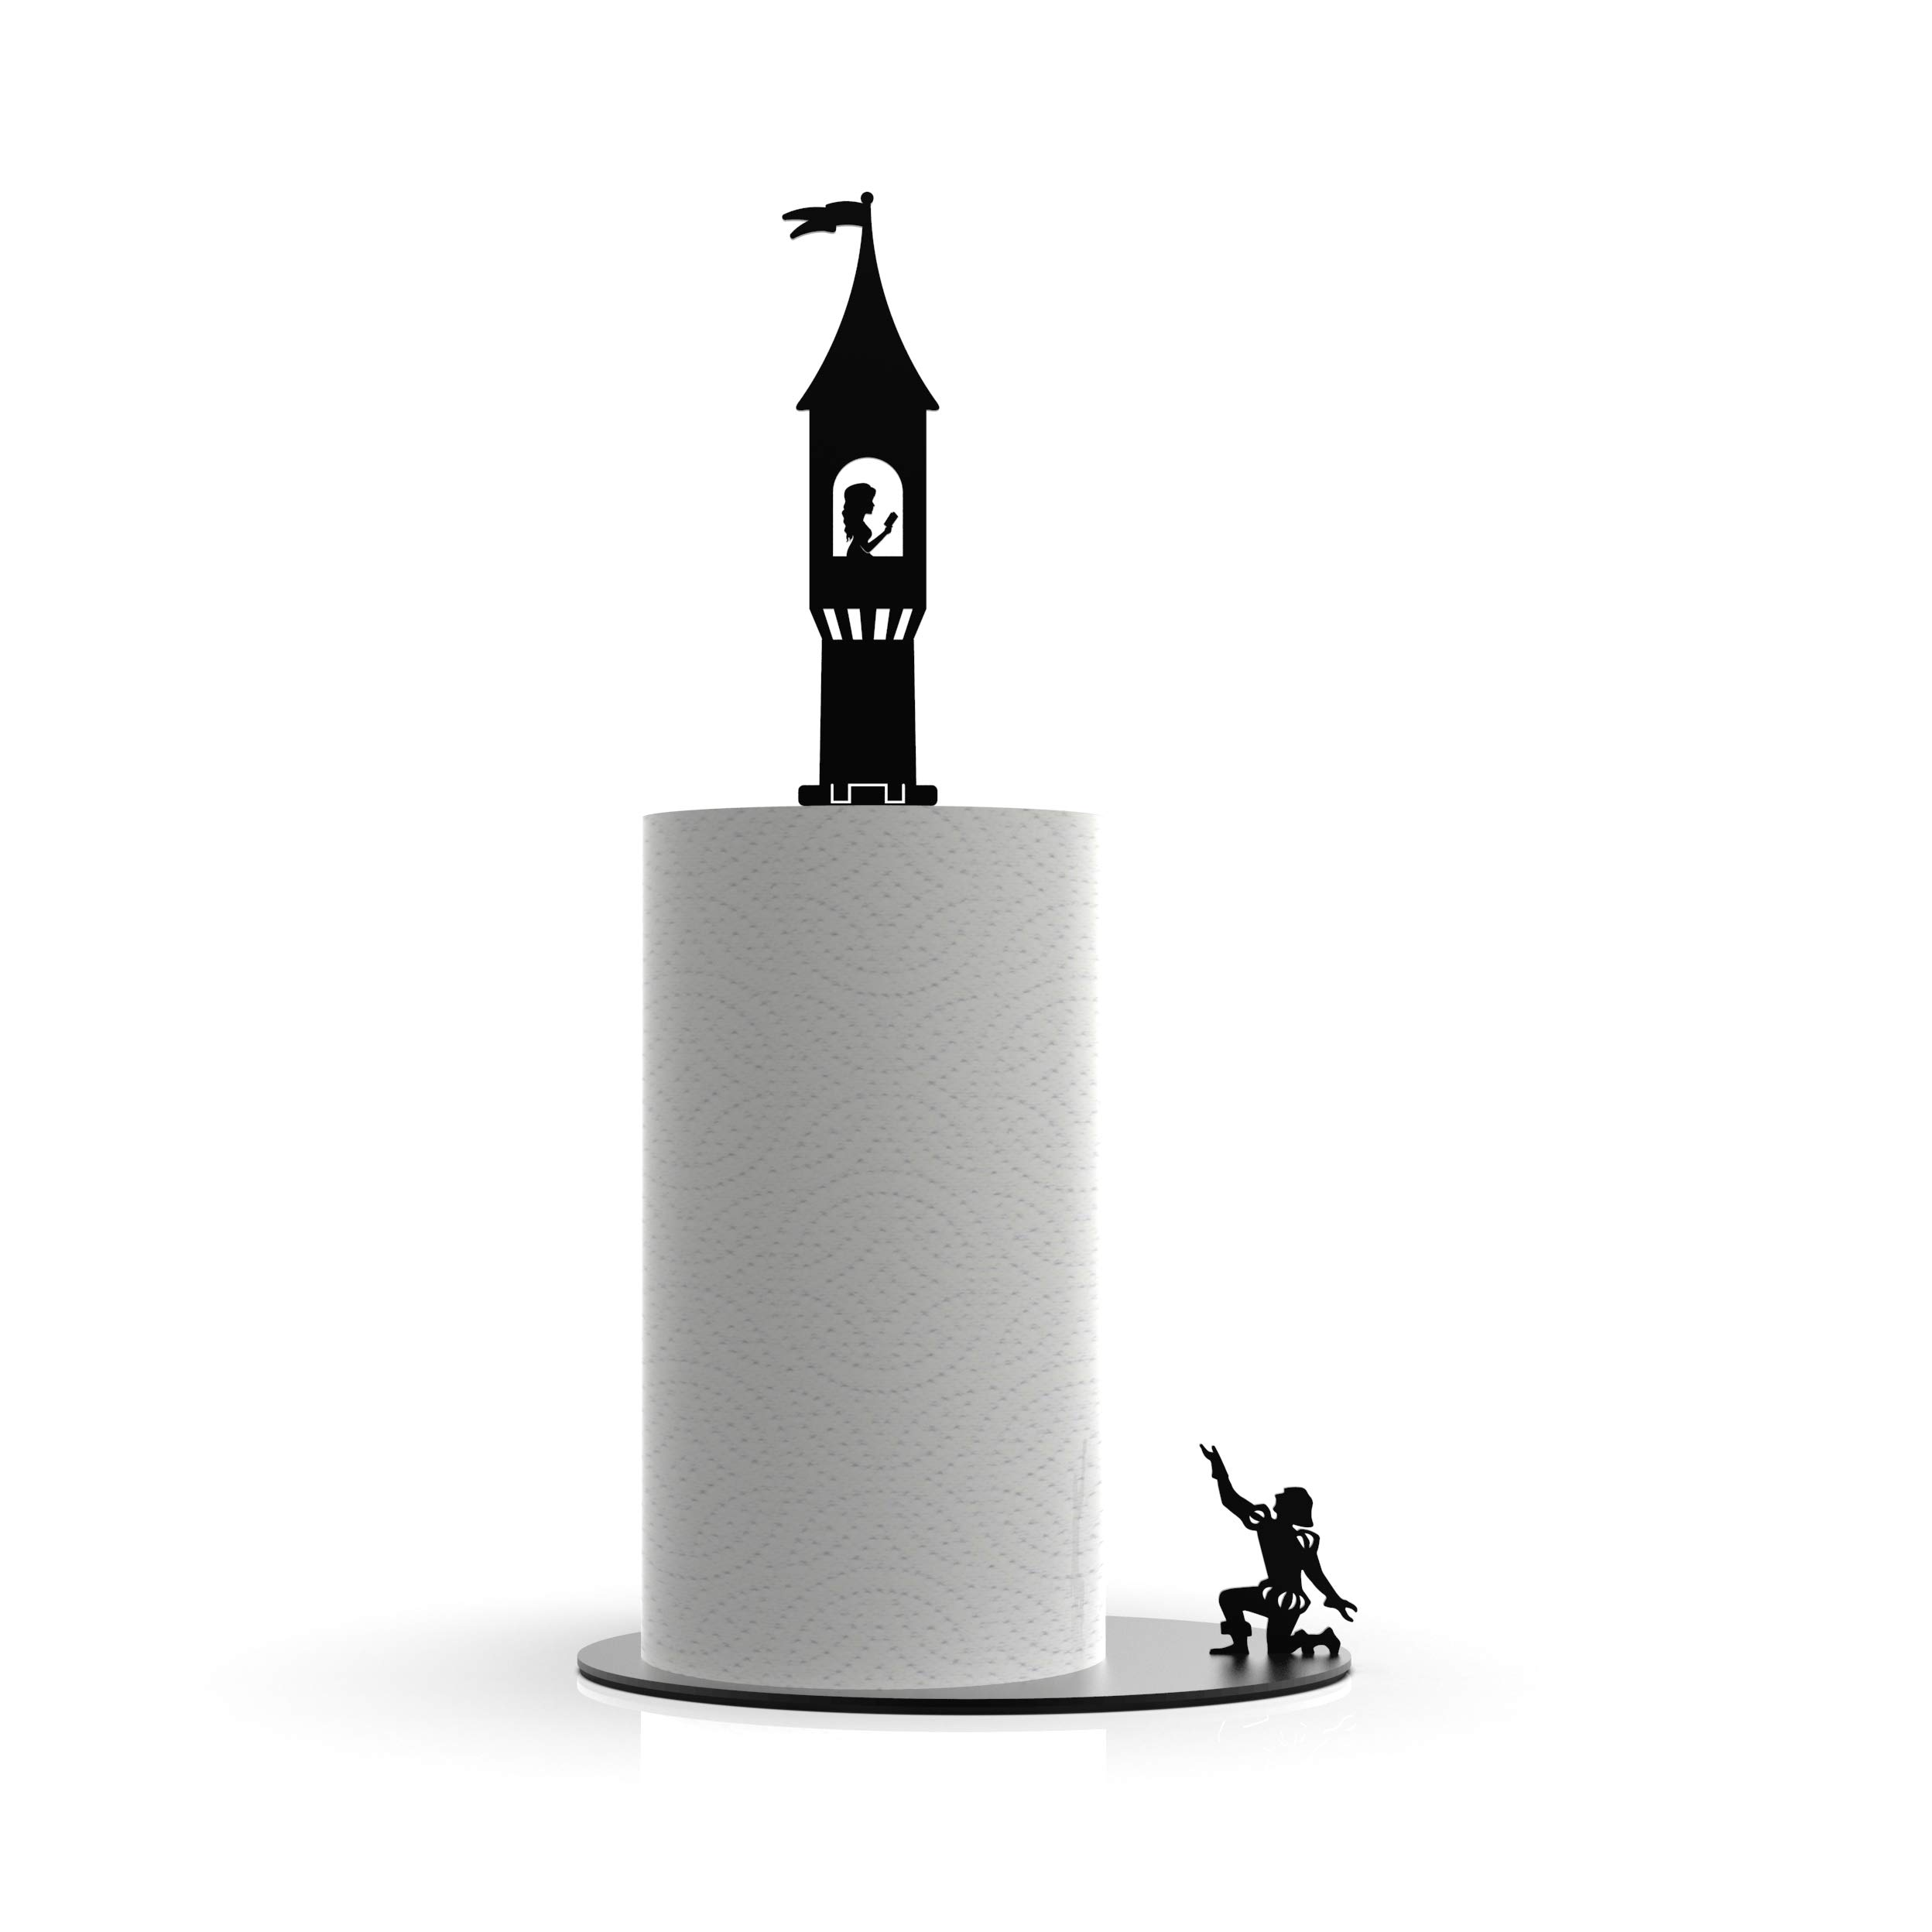 Paper Towel Stand Holder - The Princess in the Towel - Cute Design Rack | Perfect Gift by Artori Design